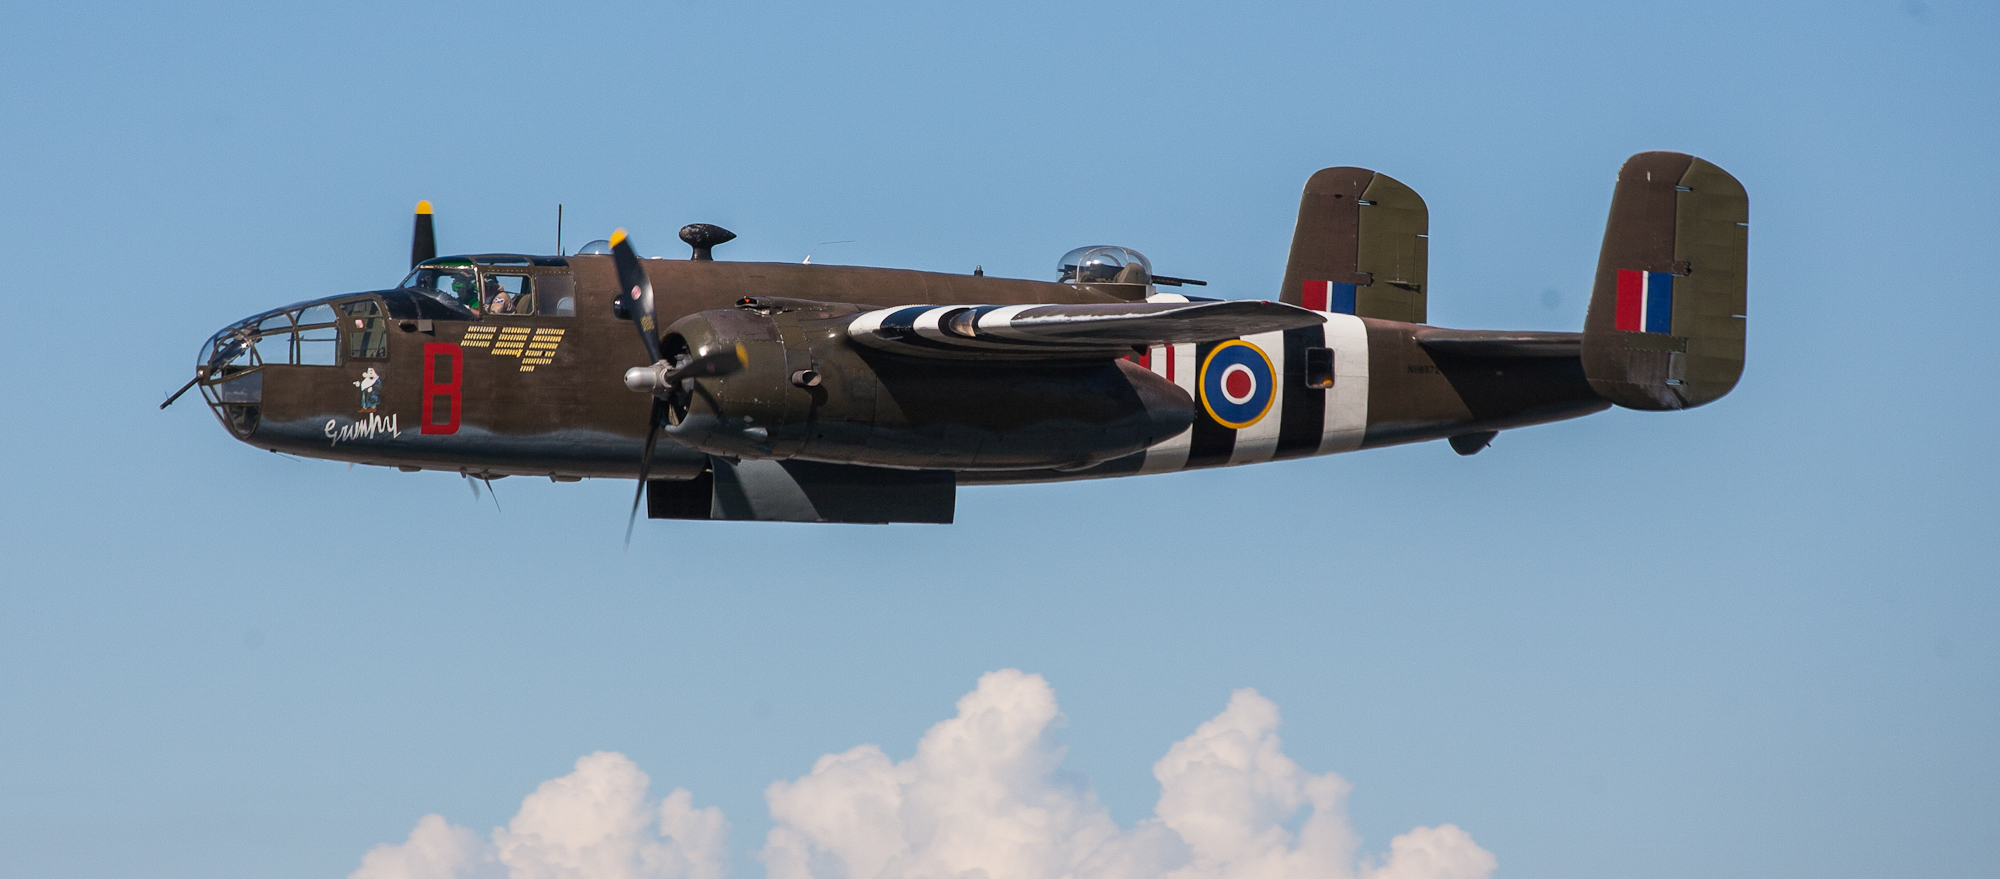 FileB-25 with its bomb bay doors open (7674537958).jpg & File:B-25 with its bomb bay doors open (7674537958).jpg ...